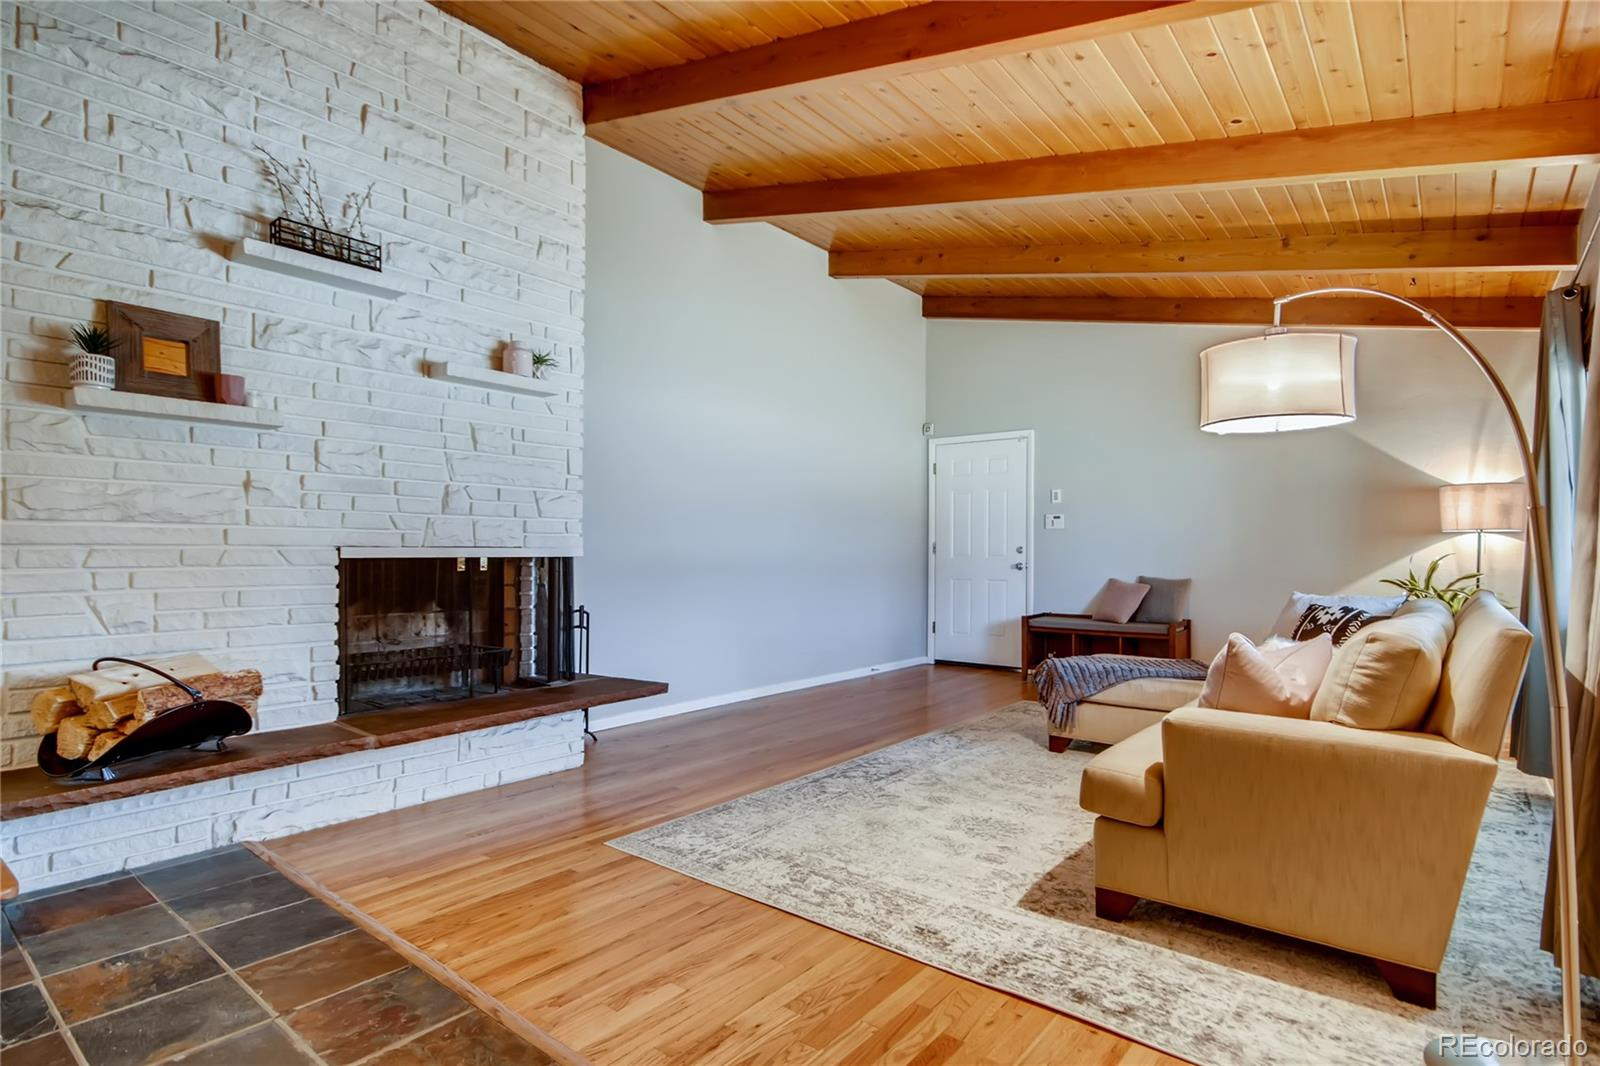 MLS# 9197299 - 8 - 10511 W 22nd Place, Lakewood, CO 80215